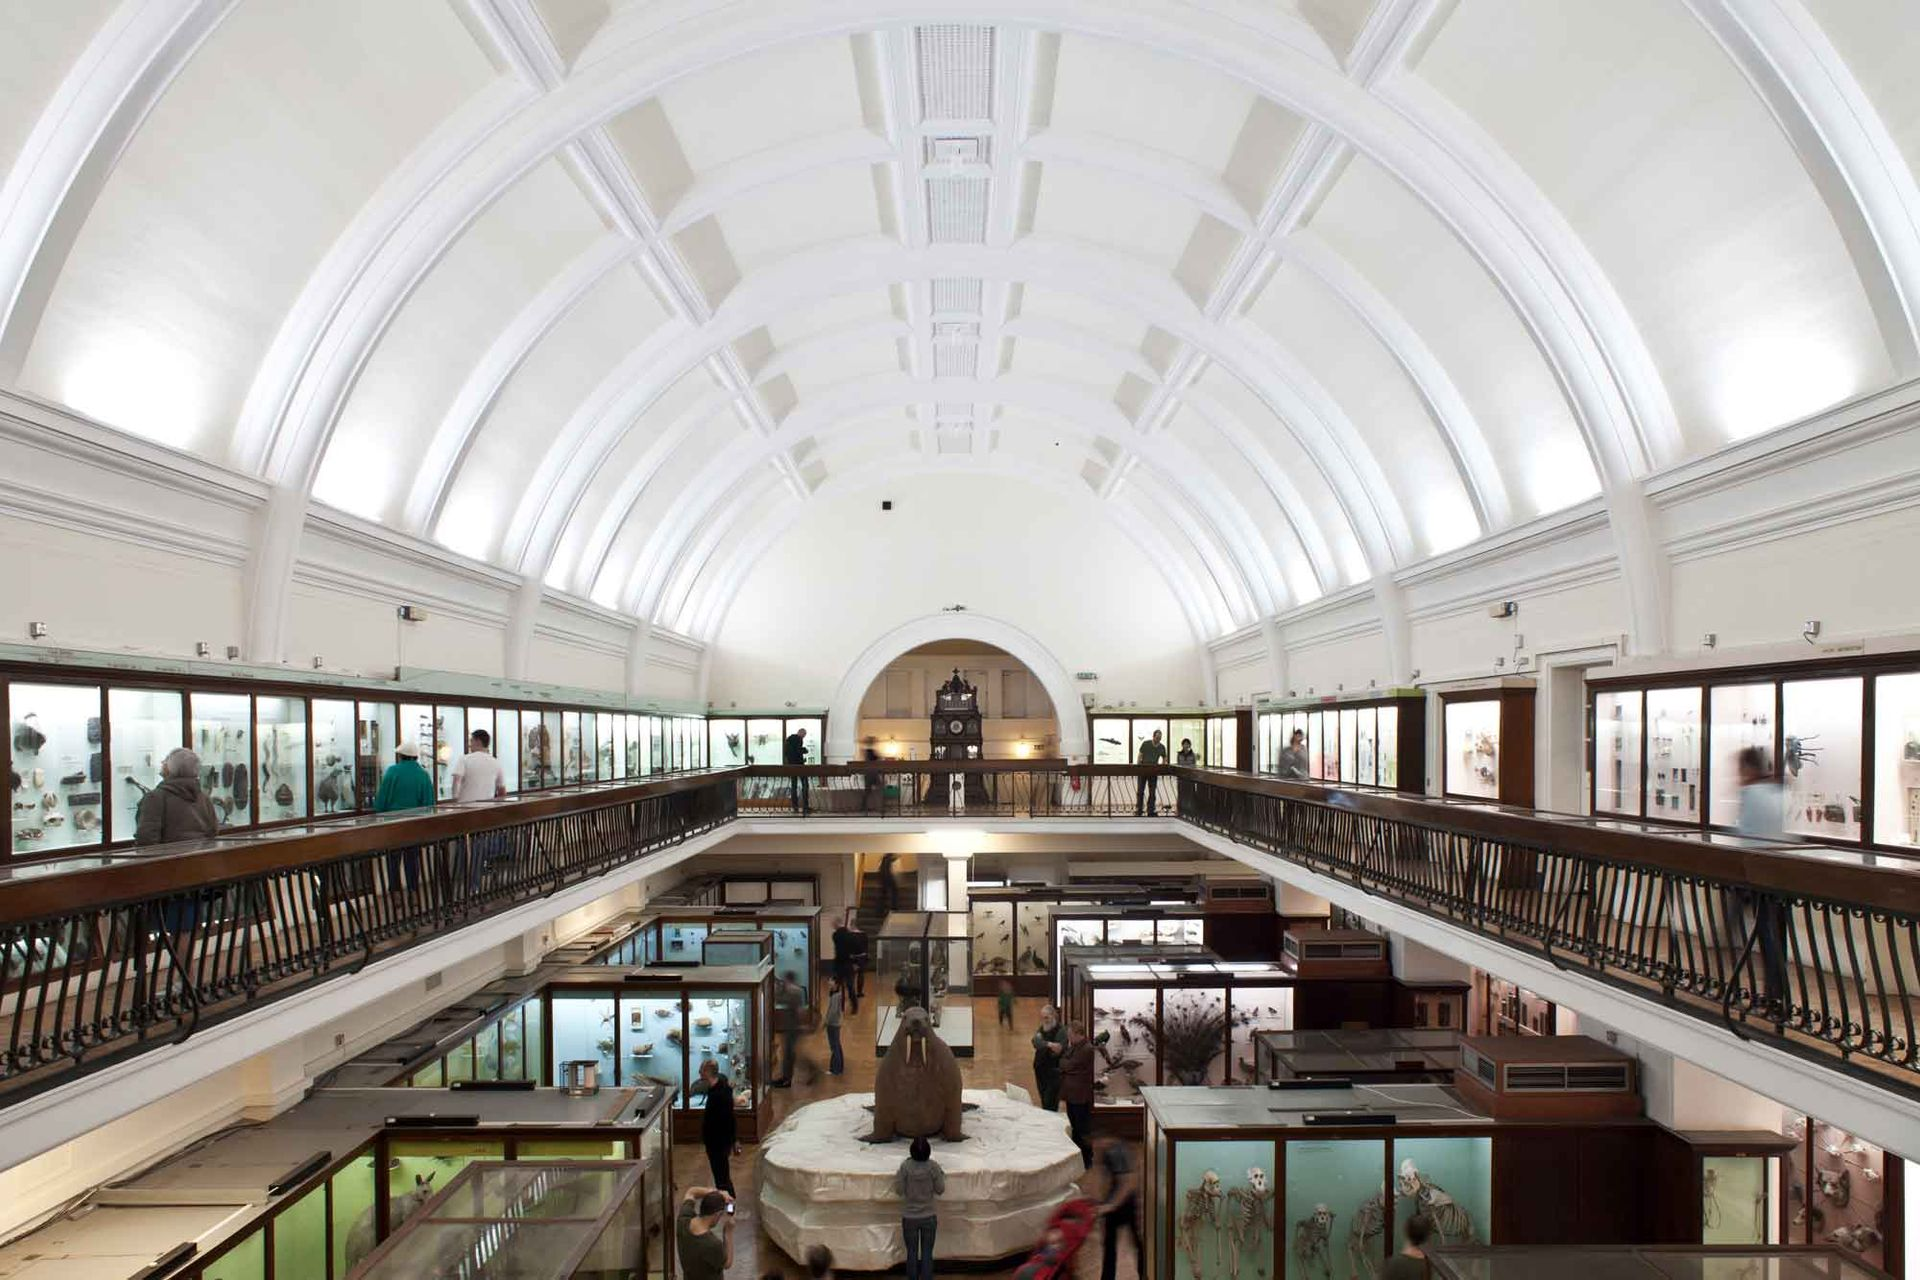 The Horniman Museum and Gardens in south London is leading a network of 12 UK institutions co-producing touring exhibitions based on their collections, with seed funding from the Art Fund Photo: Joel Knight